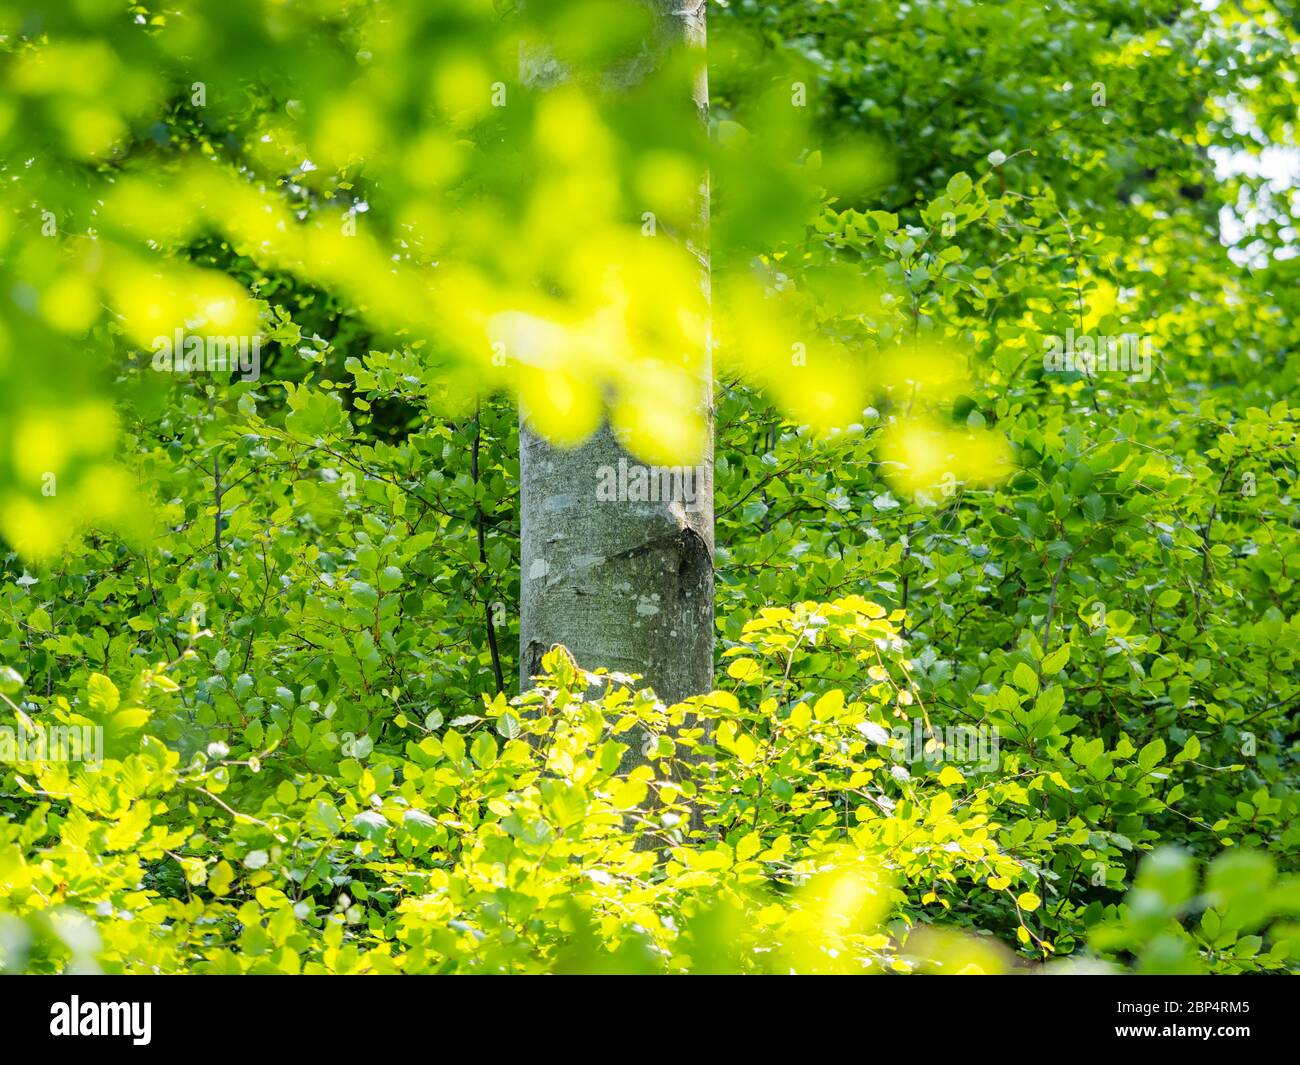 Stunning Spring Green nature color in forest tree trunk isolated in focus with bright leaves in front before Stock Photo